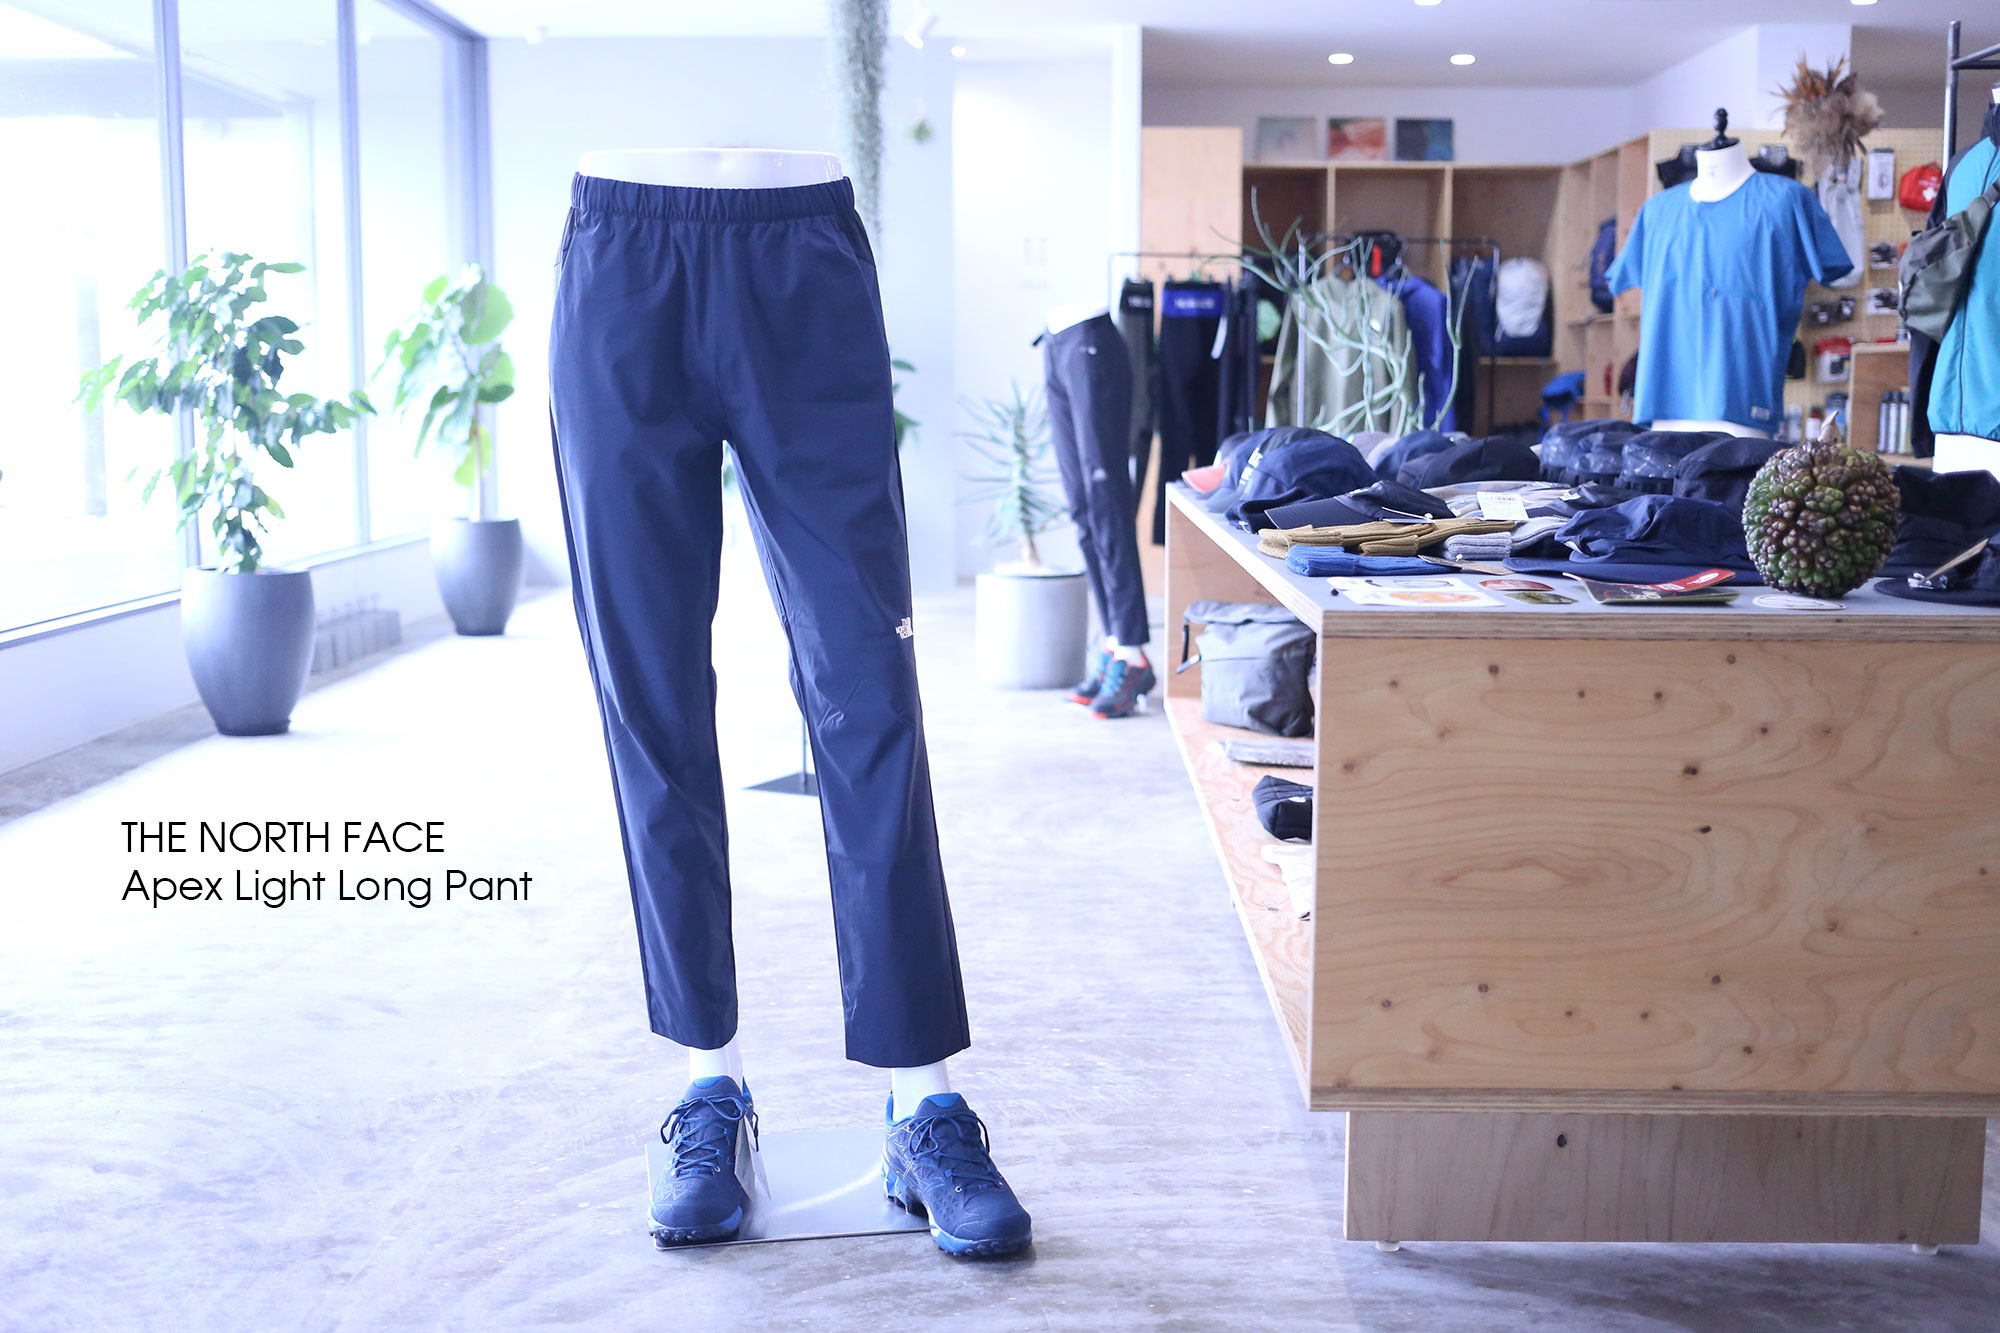 THE NORTH FACE Apex Light Long Pant